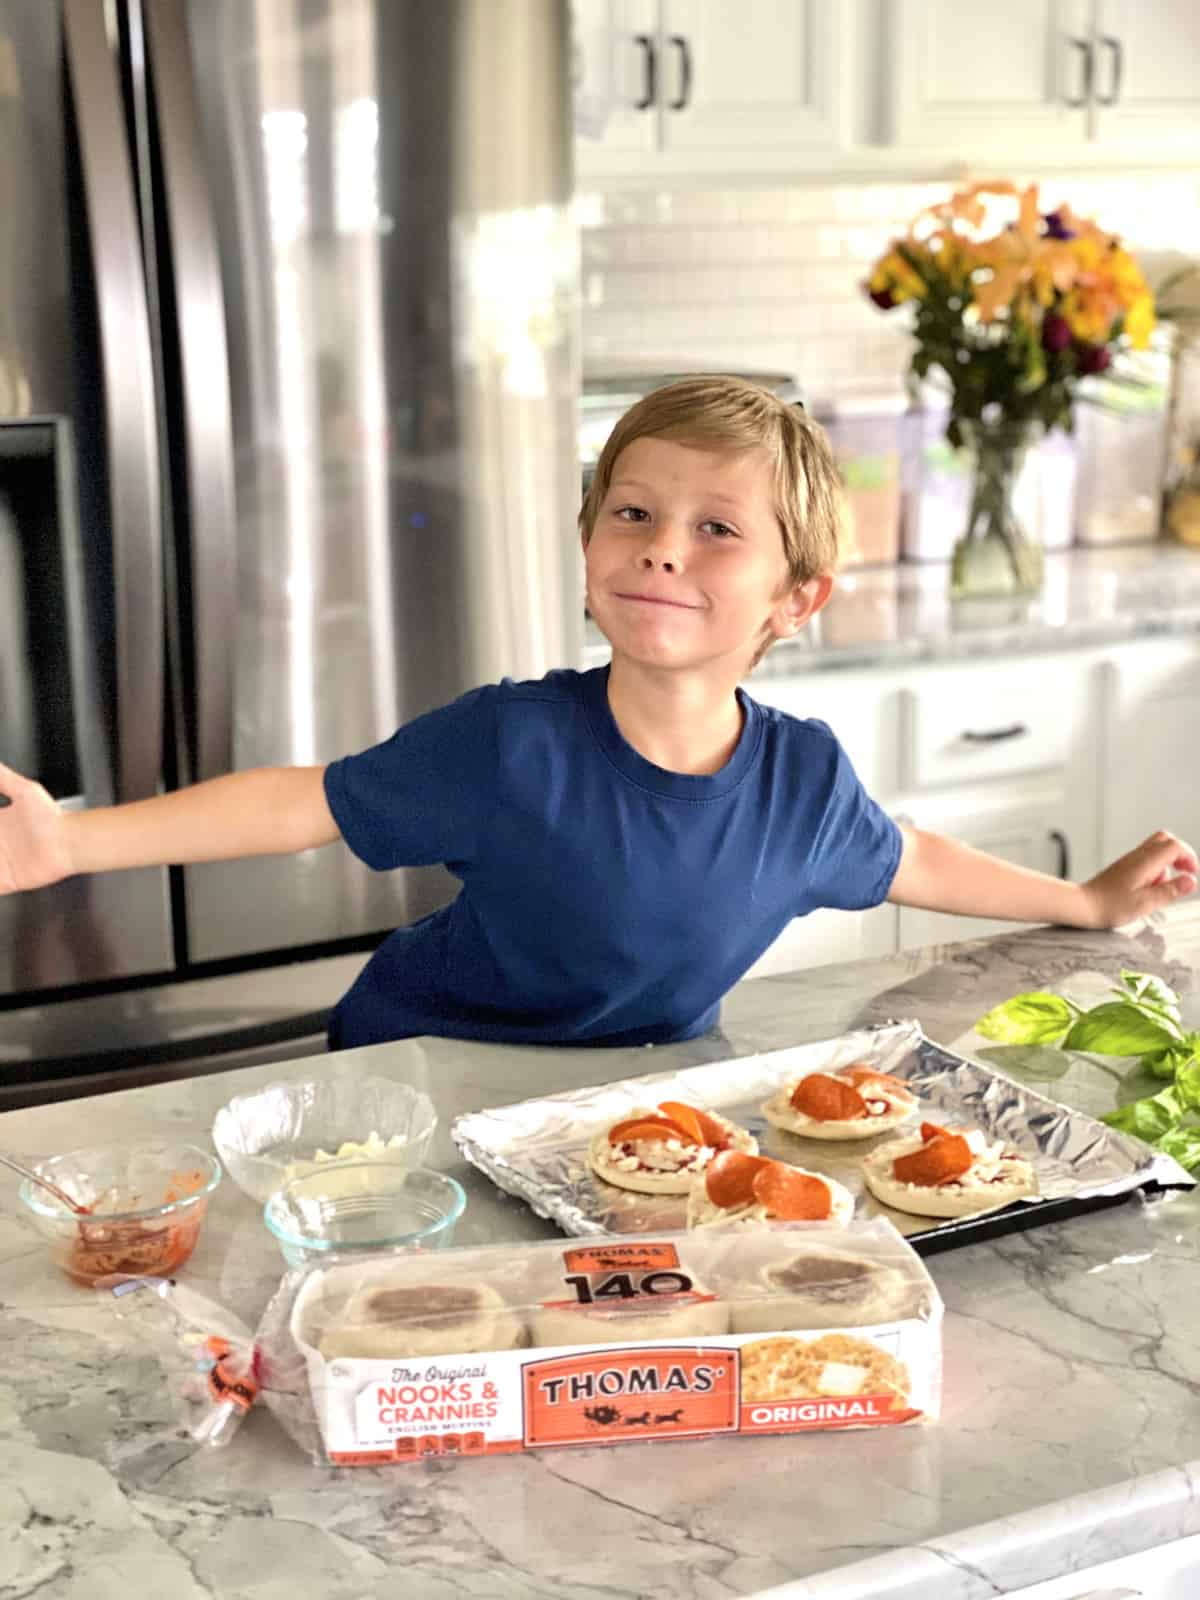 Child making Toaster Oven English Muffin Pizzas